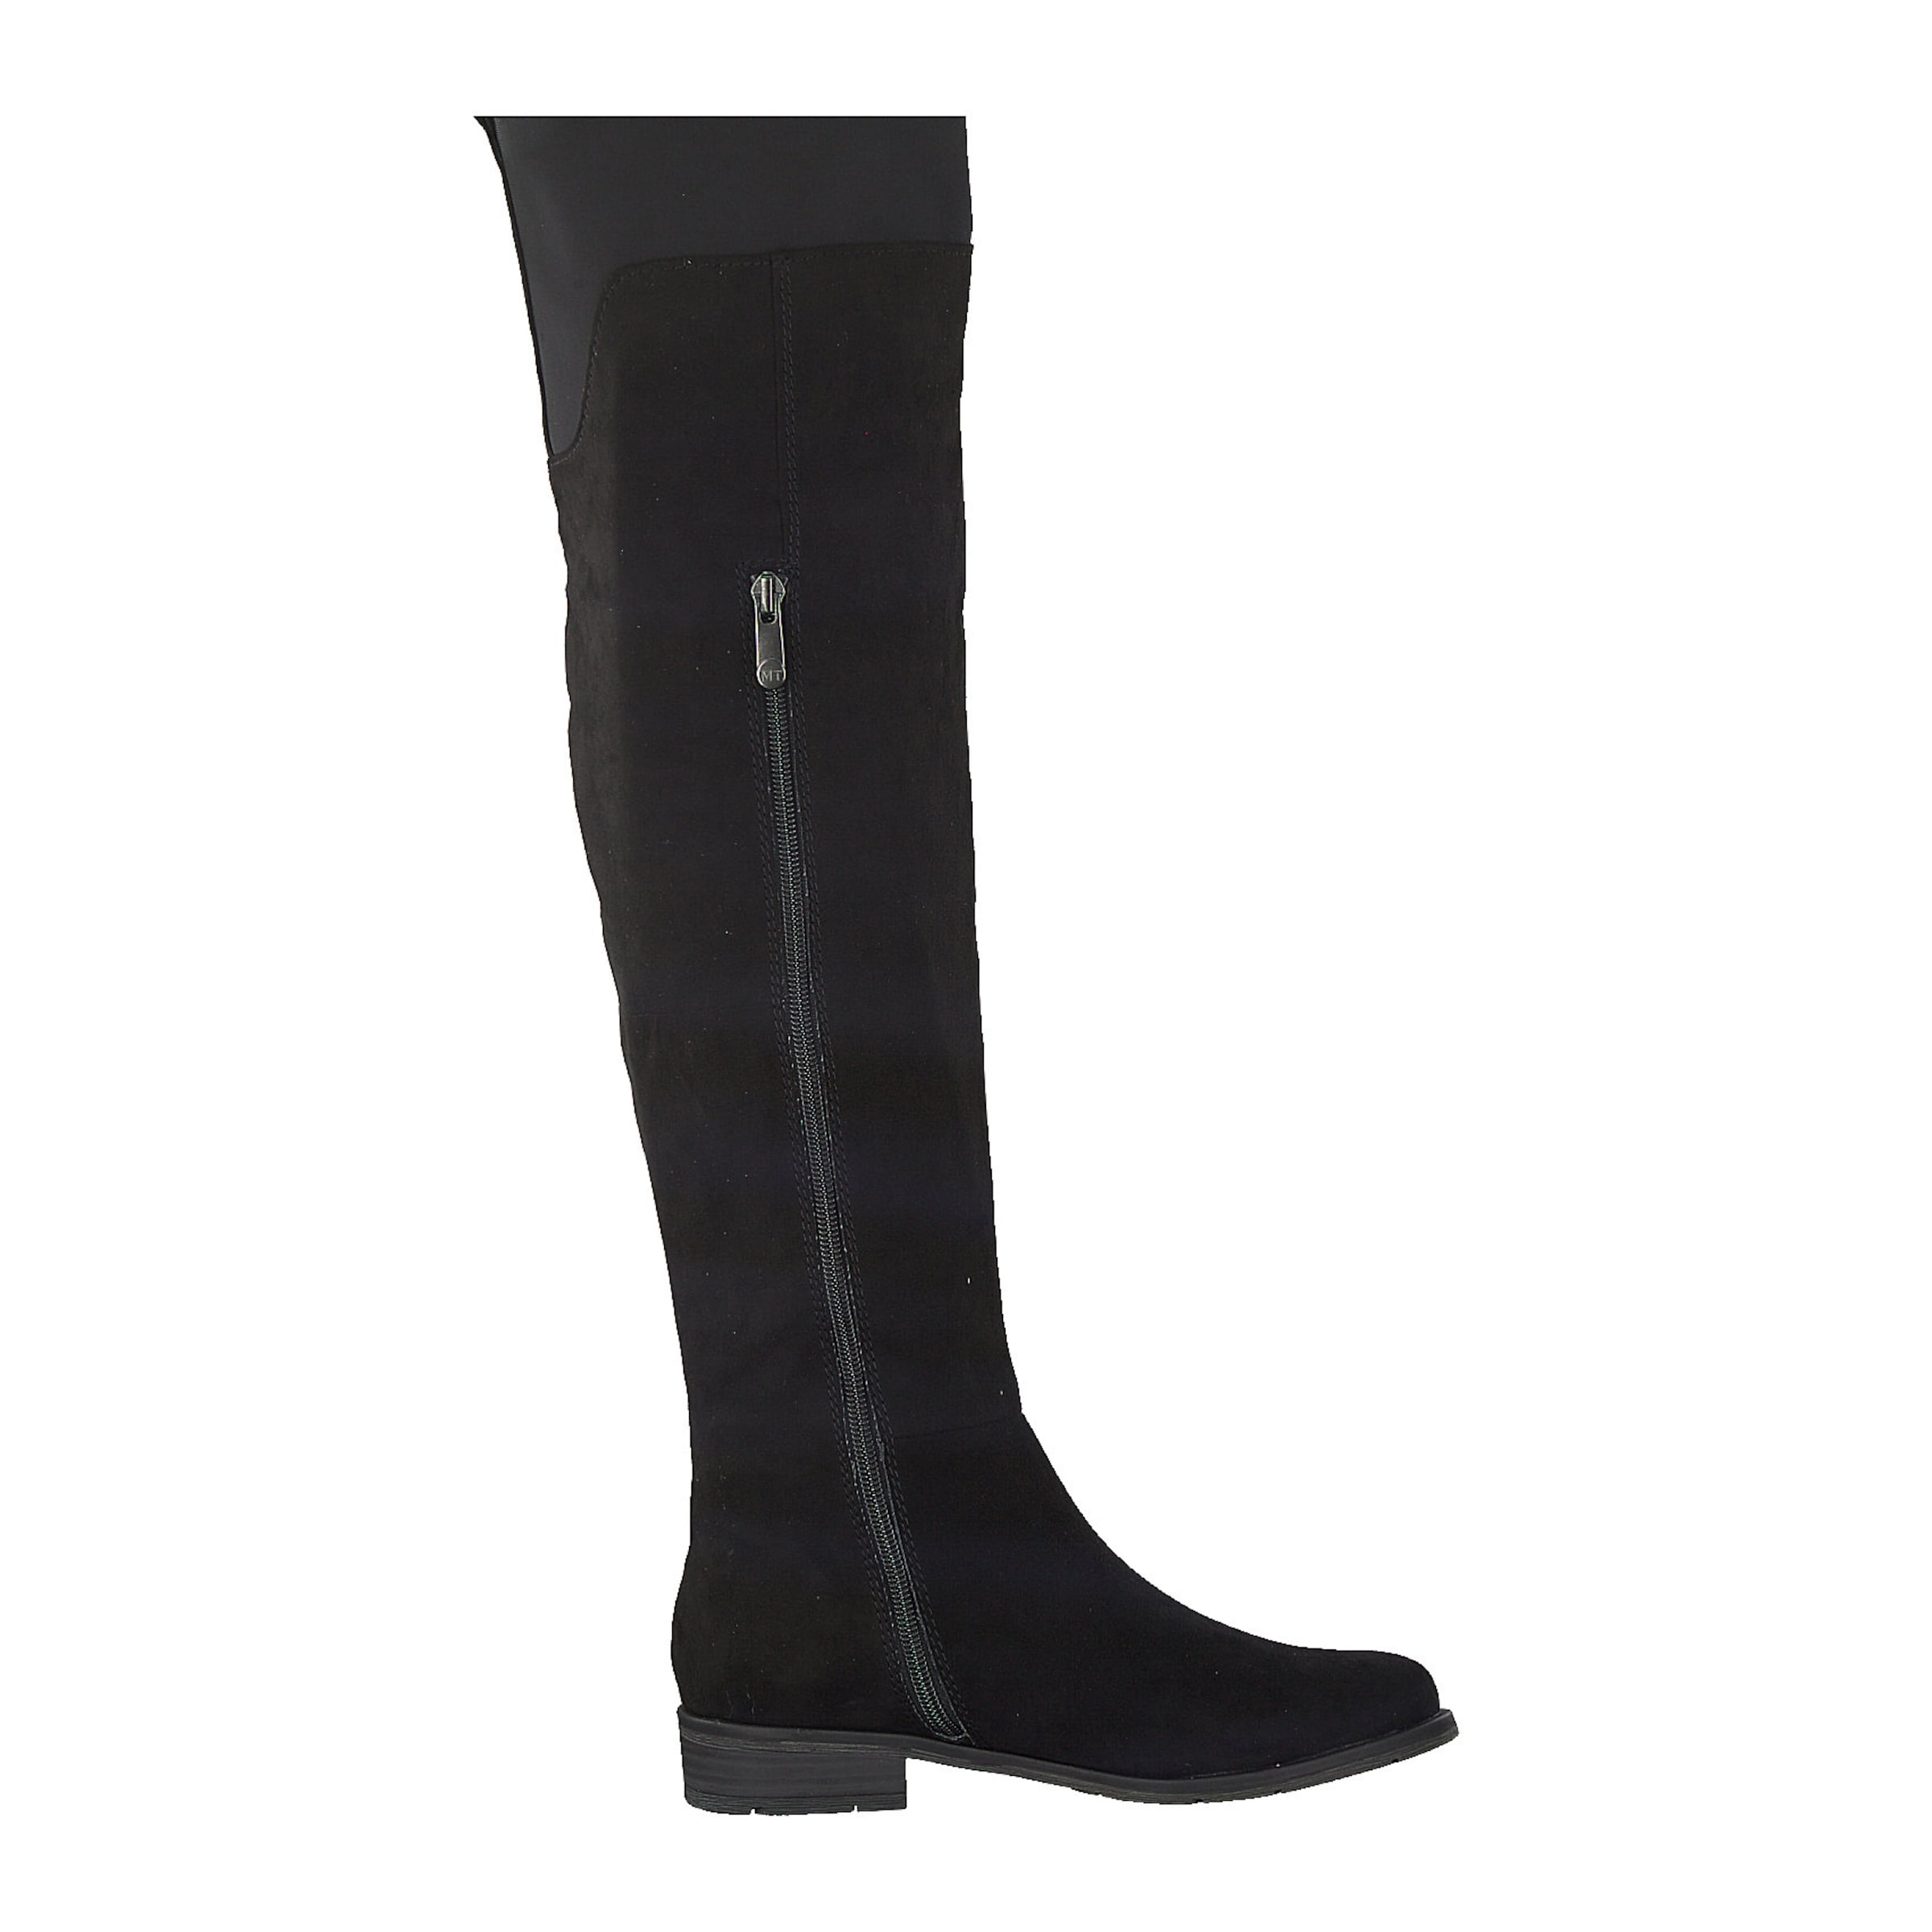 MARCO TOZZI Stiefel sonstiges Material Markenrabatt Markenrabatt Markenrabatt a46db8